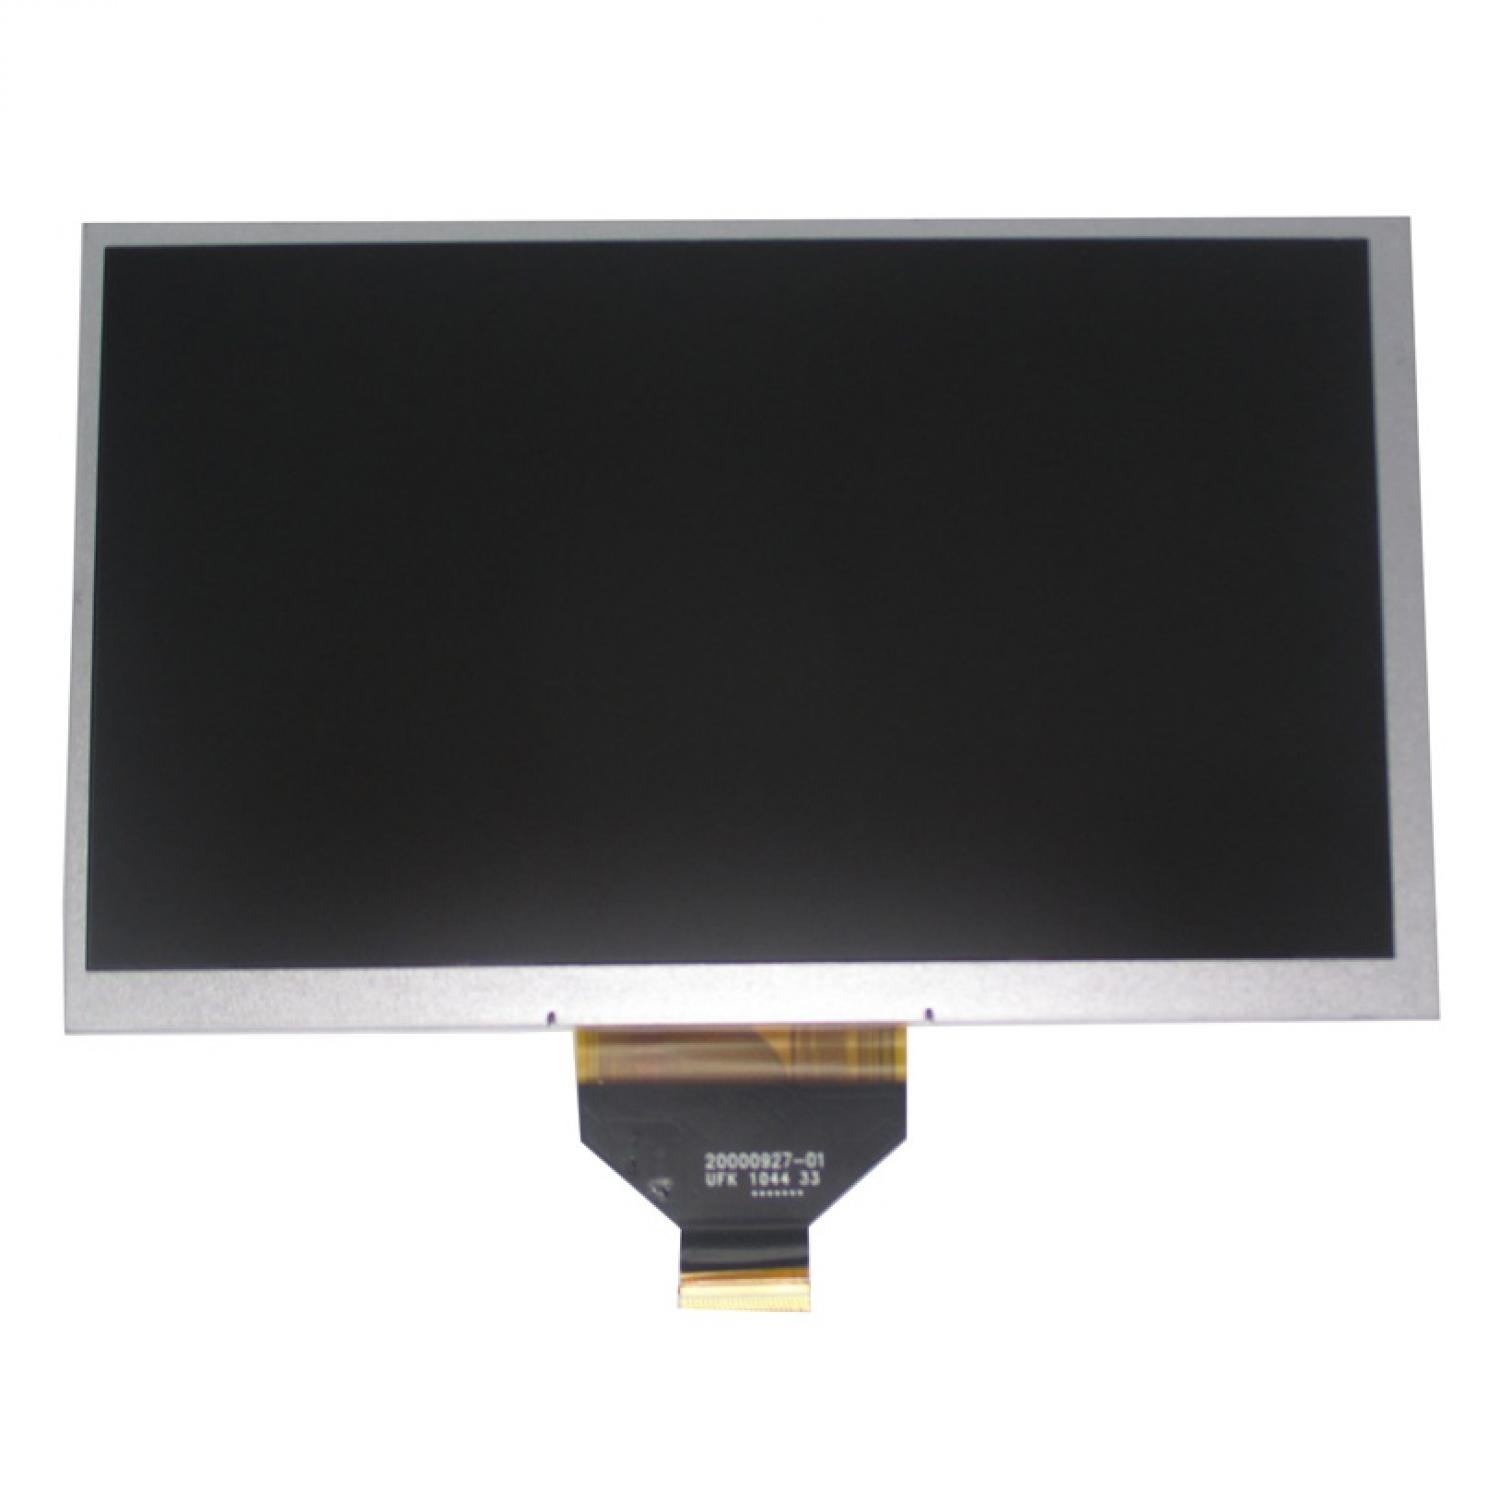 LCD Screen Replacement Huawei Ideos Tablet S7 - S7-101/102/103/104/105